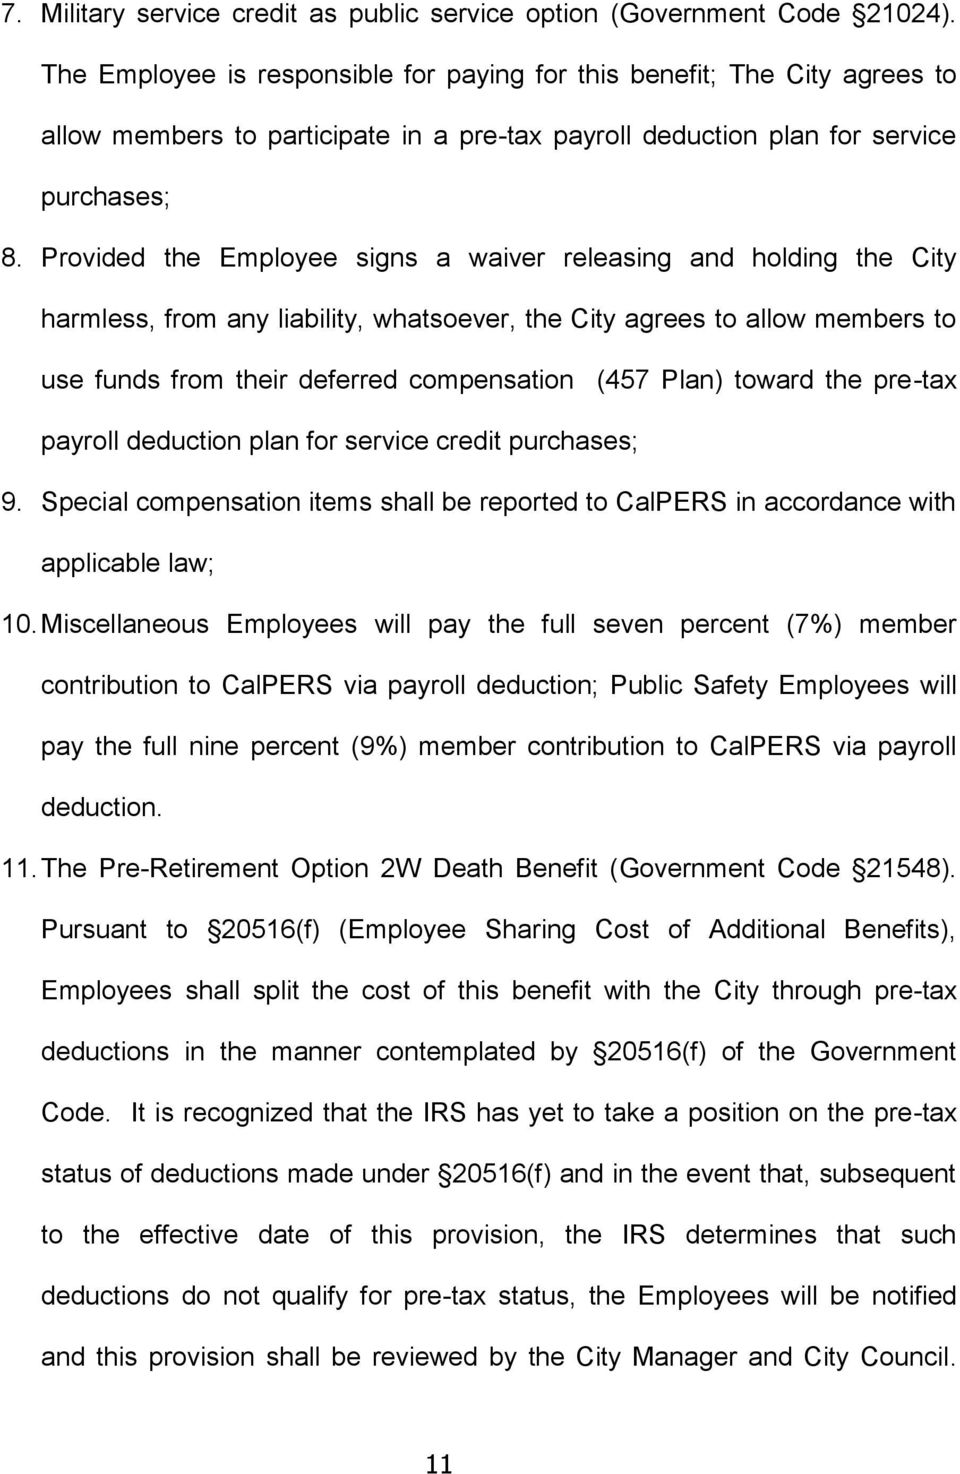 Provided the Employee signs a waiver releasing and holding the City harmless, from any liability, whatsoever, the City agrees to allow members to use funds from their deferred compensation (457 Plan)